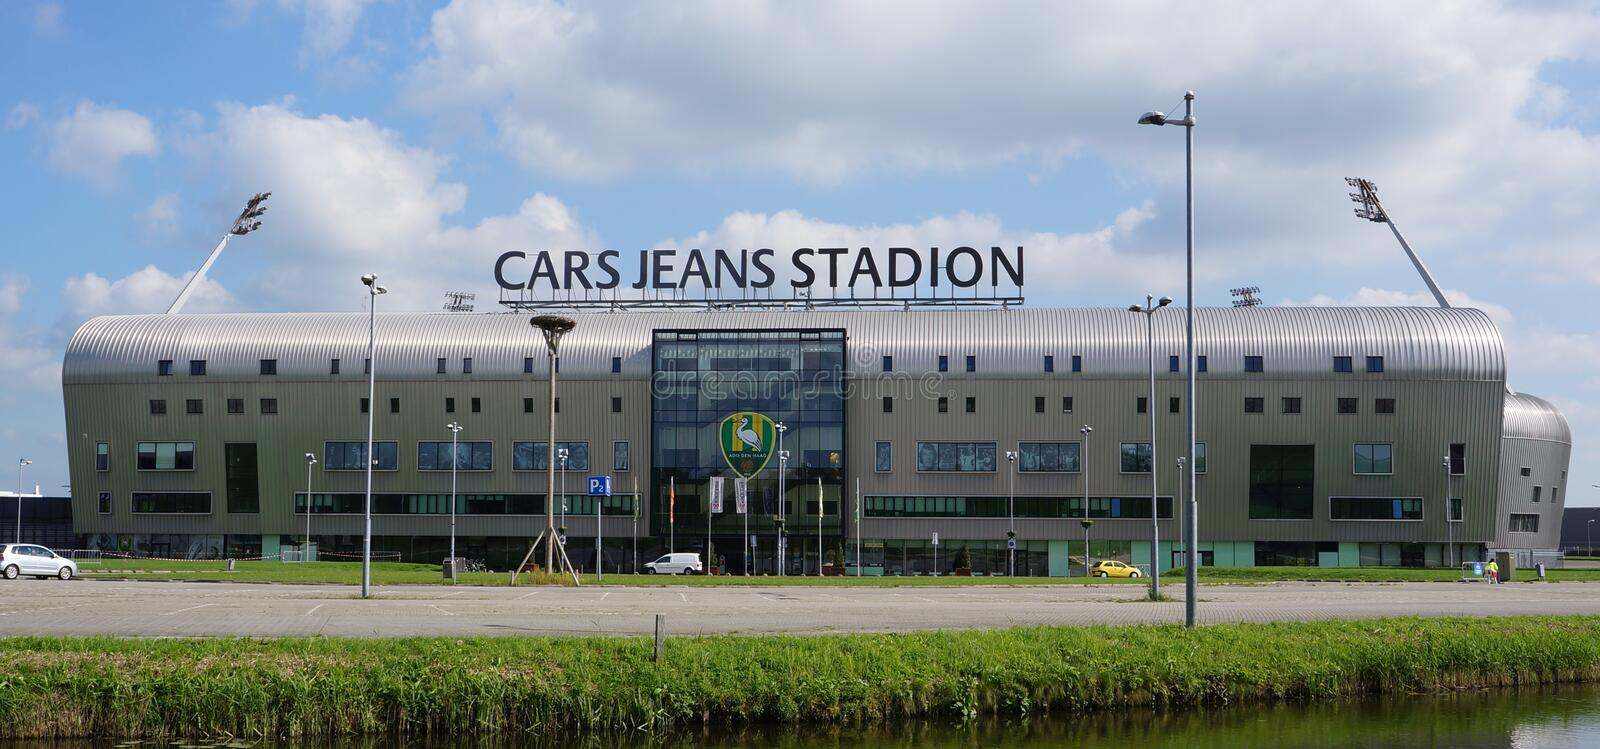 Cars Jeans Stadion in the Hague, the Netherlands stock image